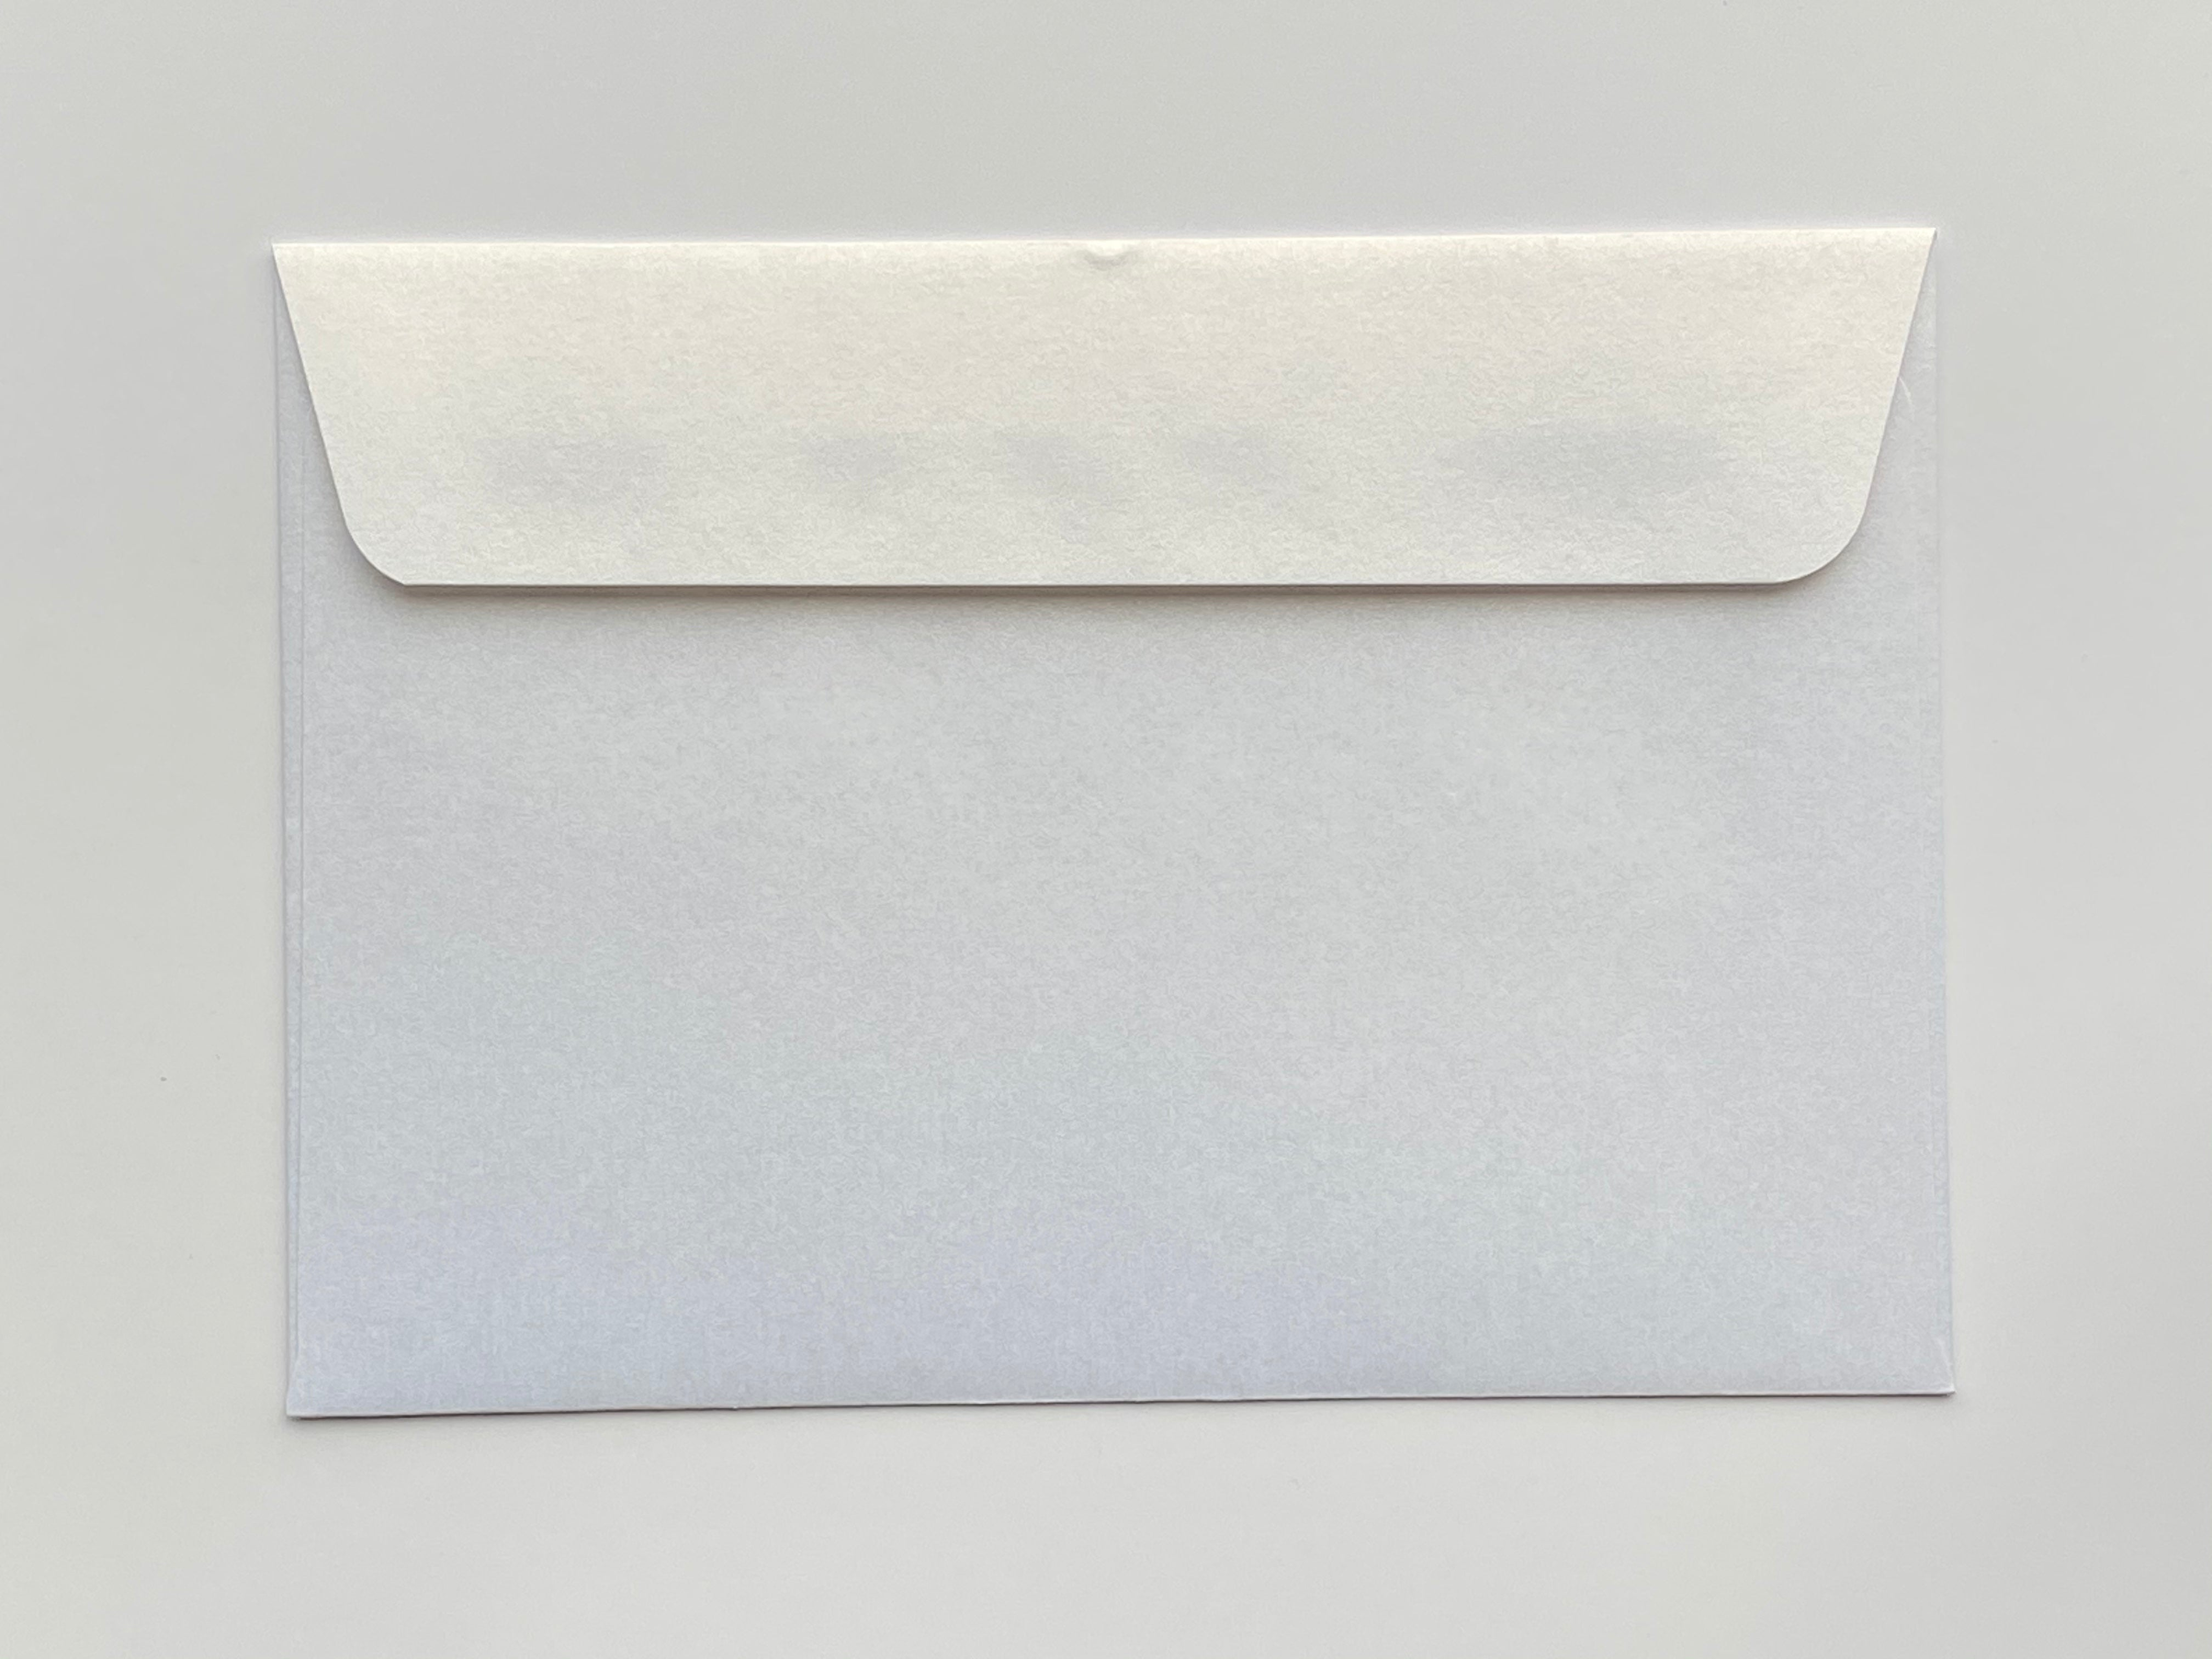 C7 metallic envelopes